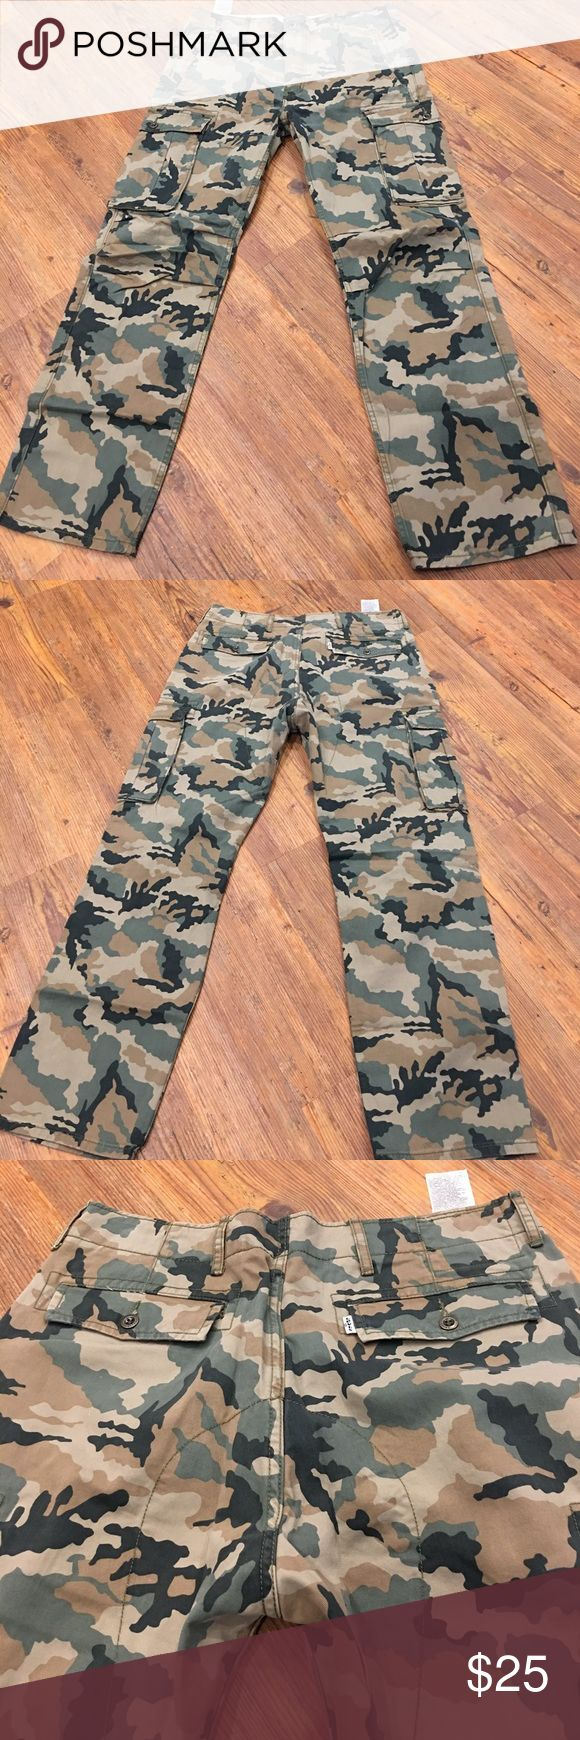 NWOT Levi Camo Men's Waist 34 Inseam 32 Cargo pant NWOT Levi cargo men's pant camo print. Waist 34. Inseam 32 never wore these Levi's Pants Cargo